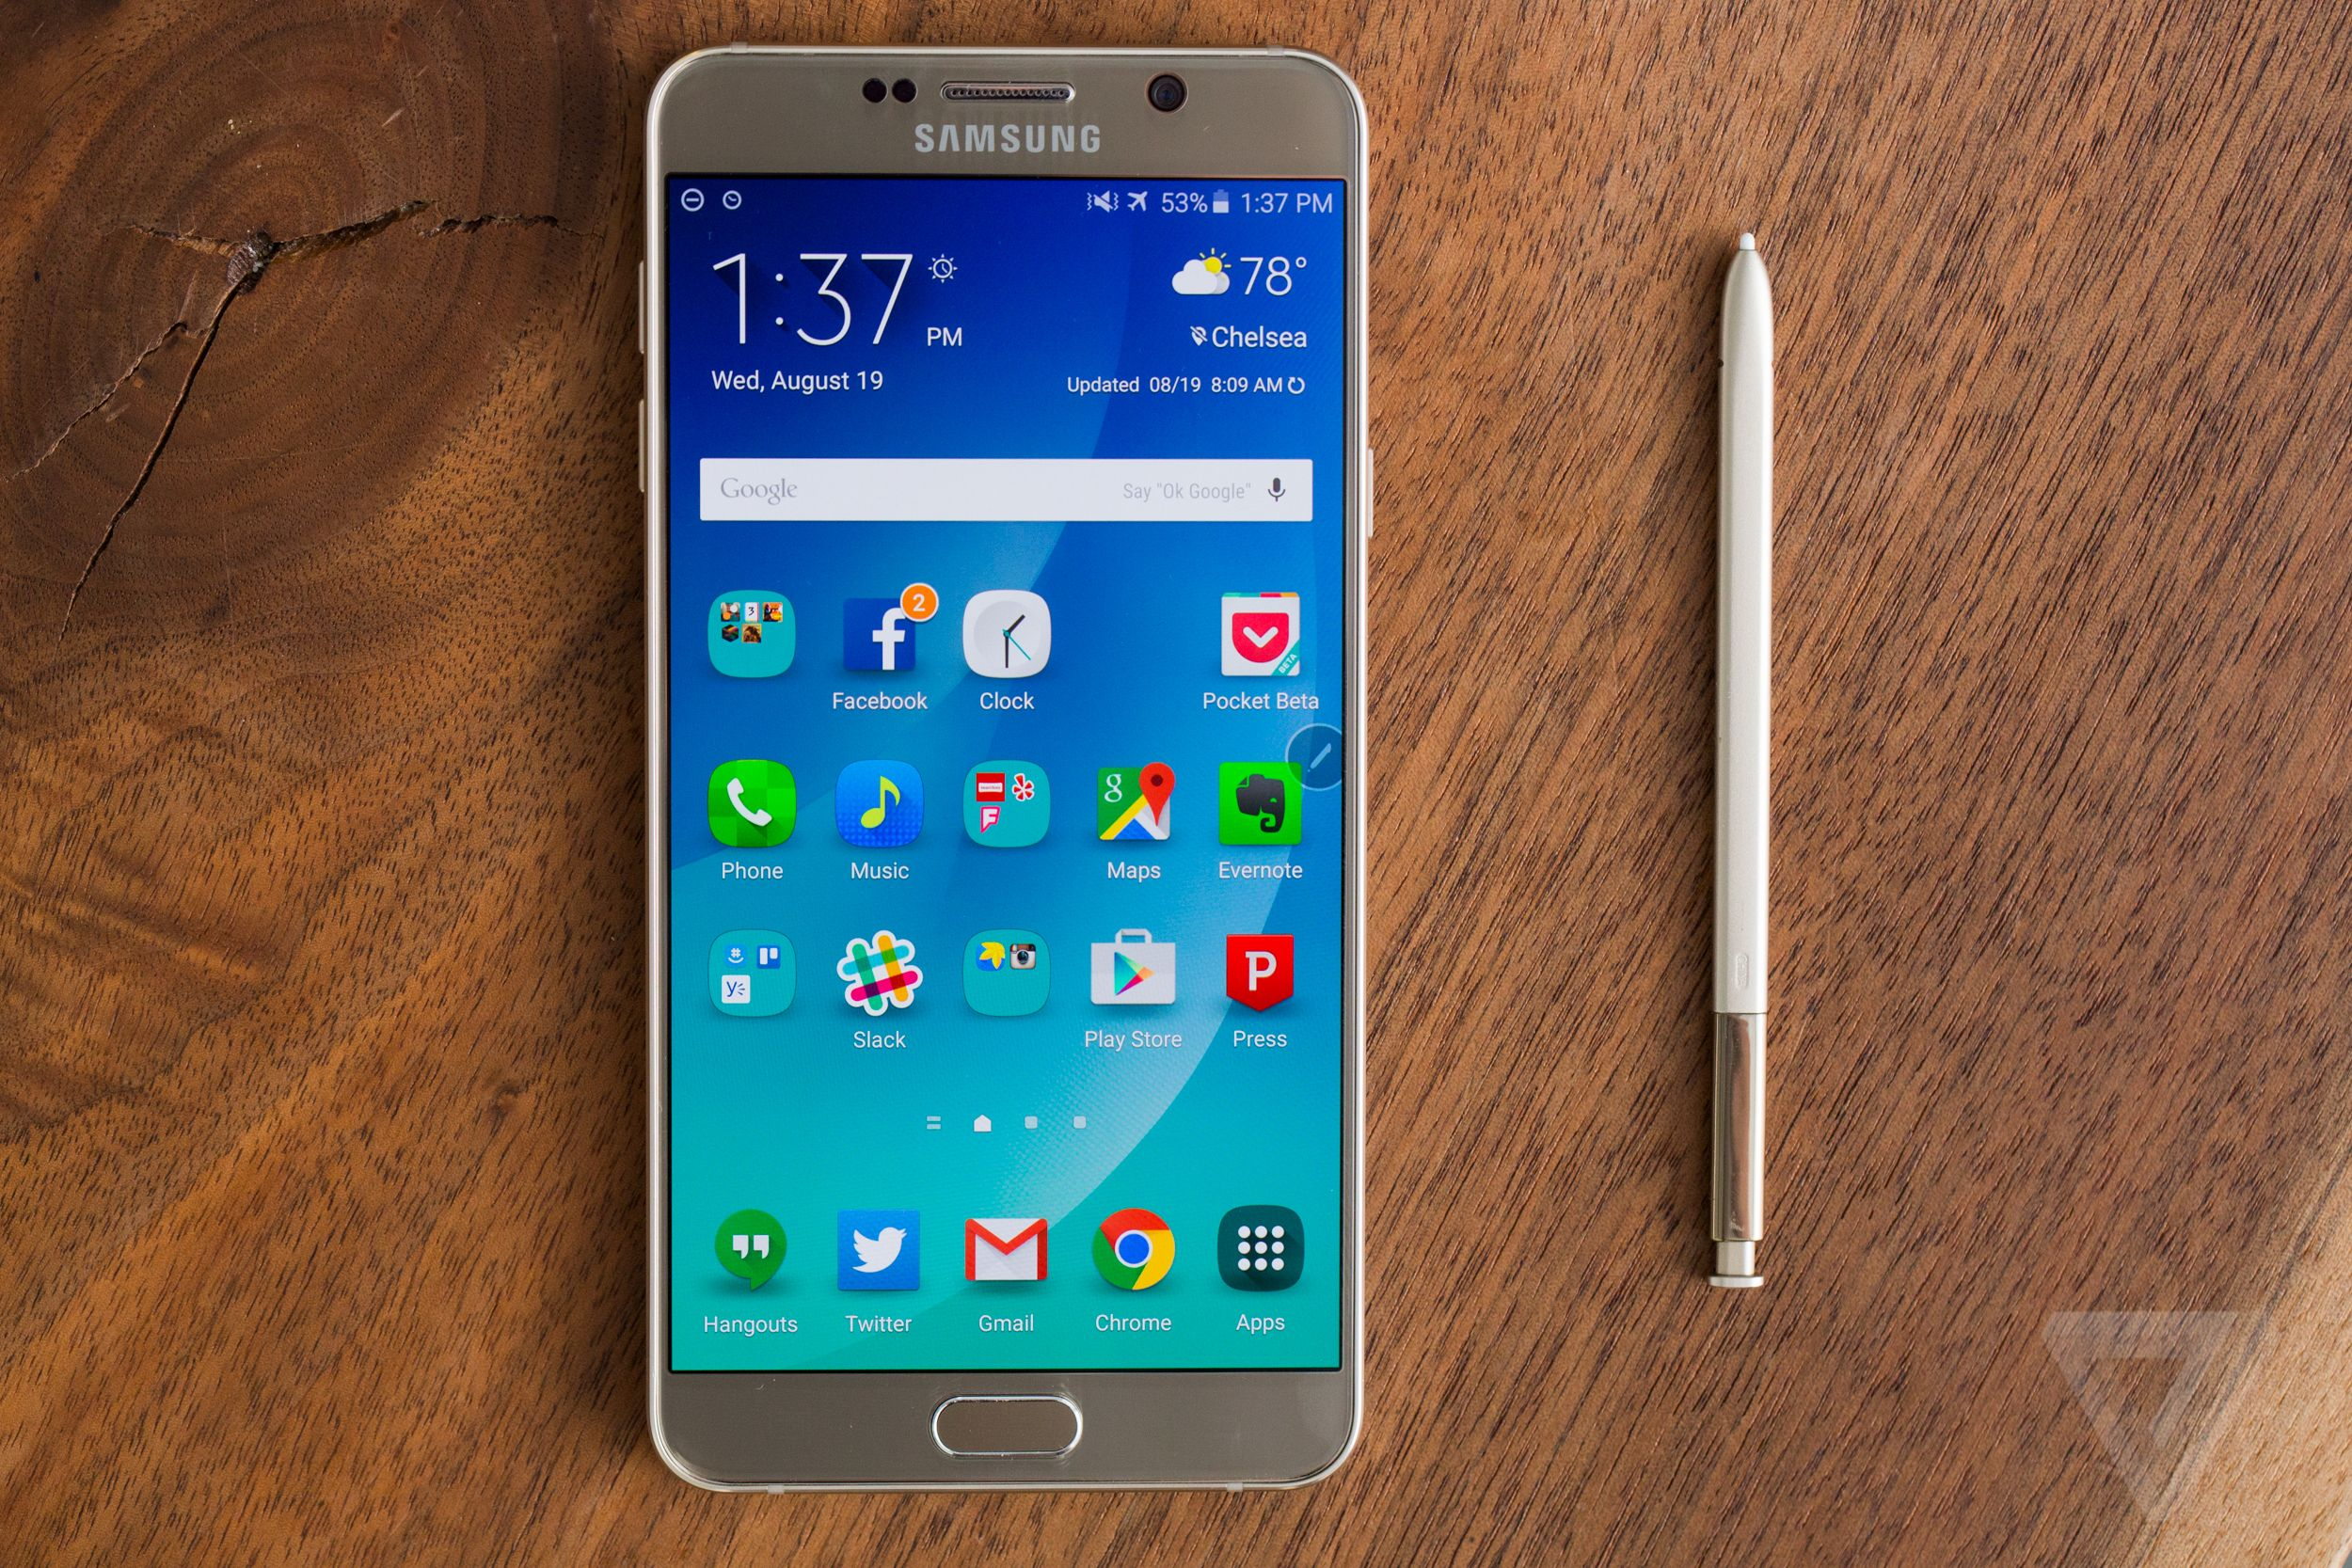 Galaxy Note 5: Top 10 Features